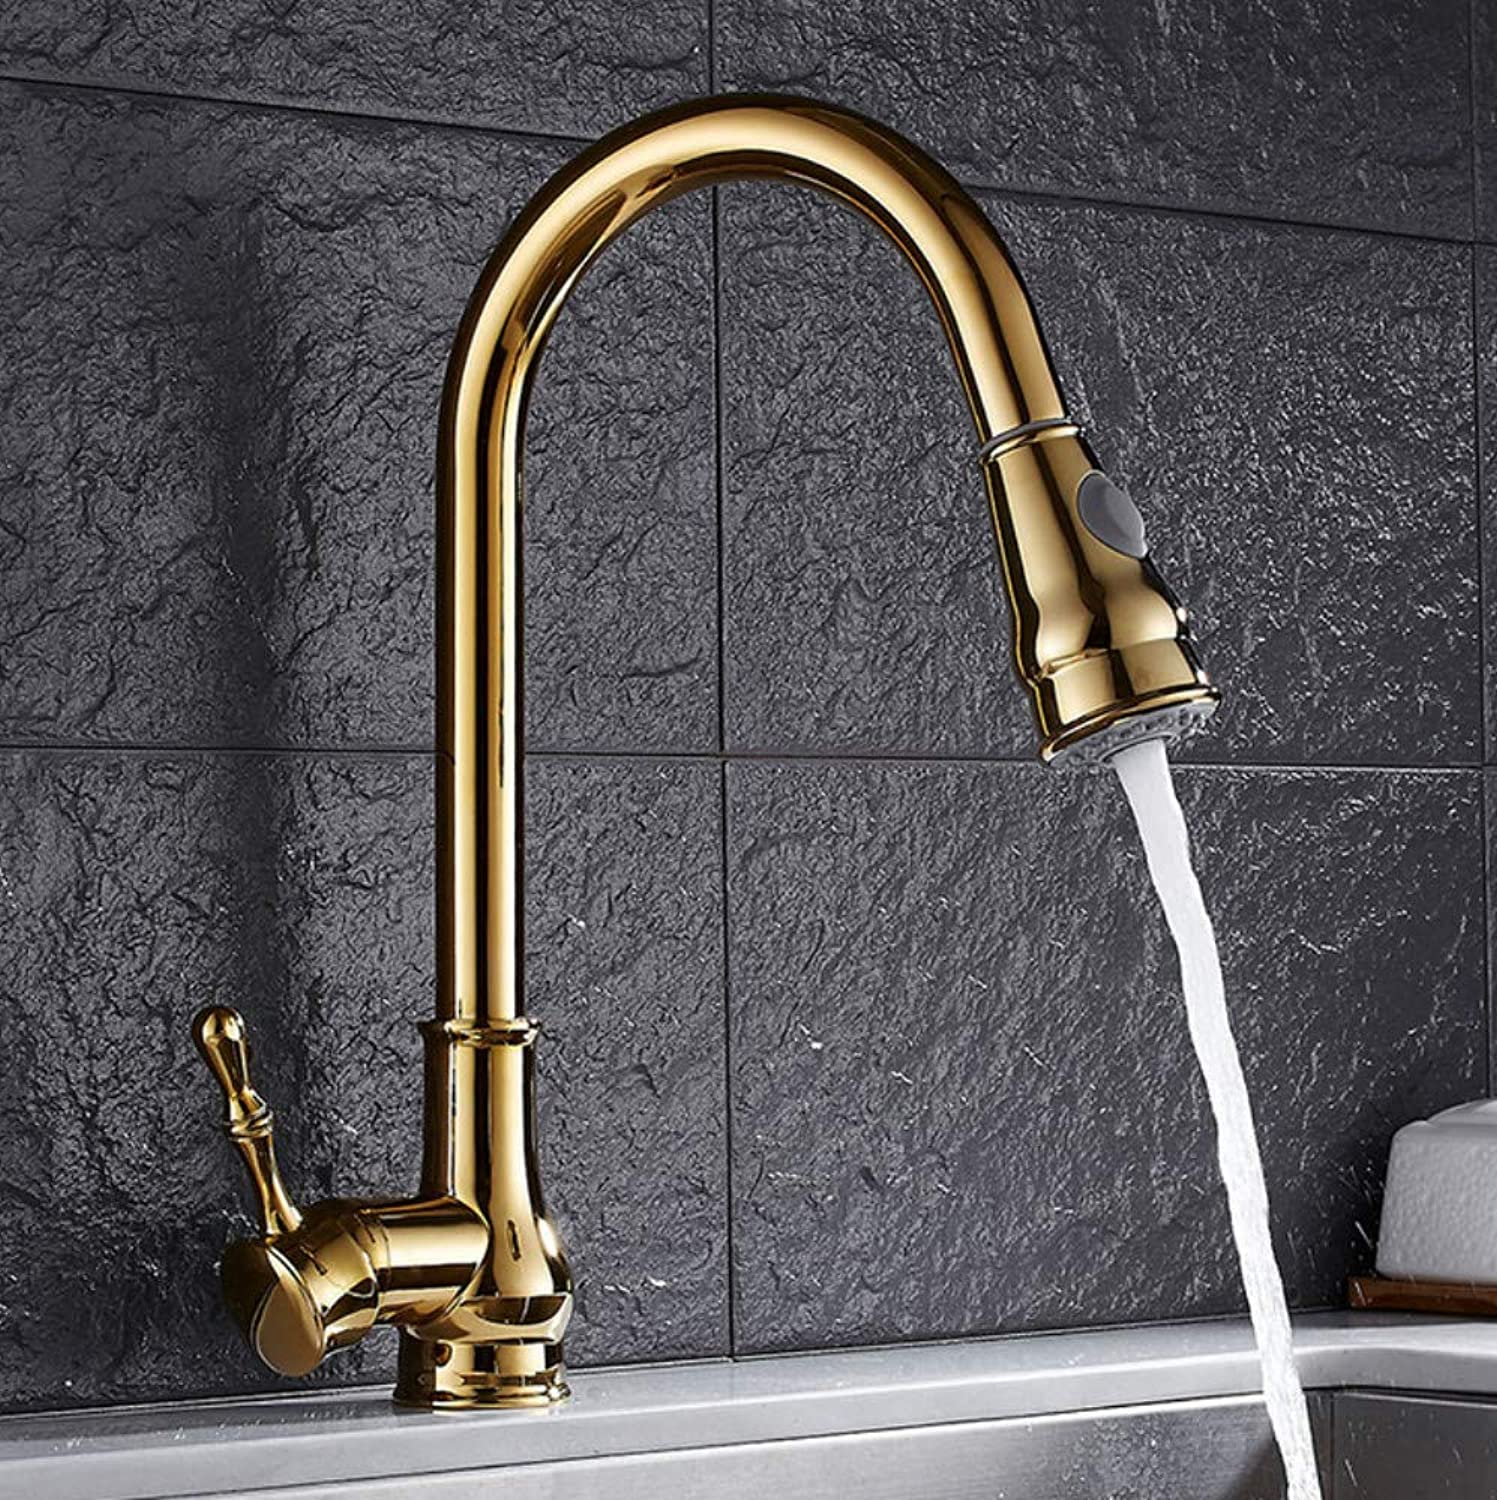 redOOY Kitchen Faucet Hot and Cold Water 360 Degree redation gold Brass Brushed Mixer Tap Sink Faucet Vegetable Washing